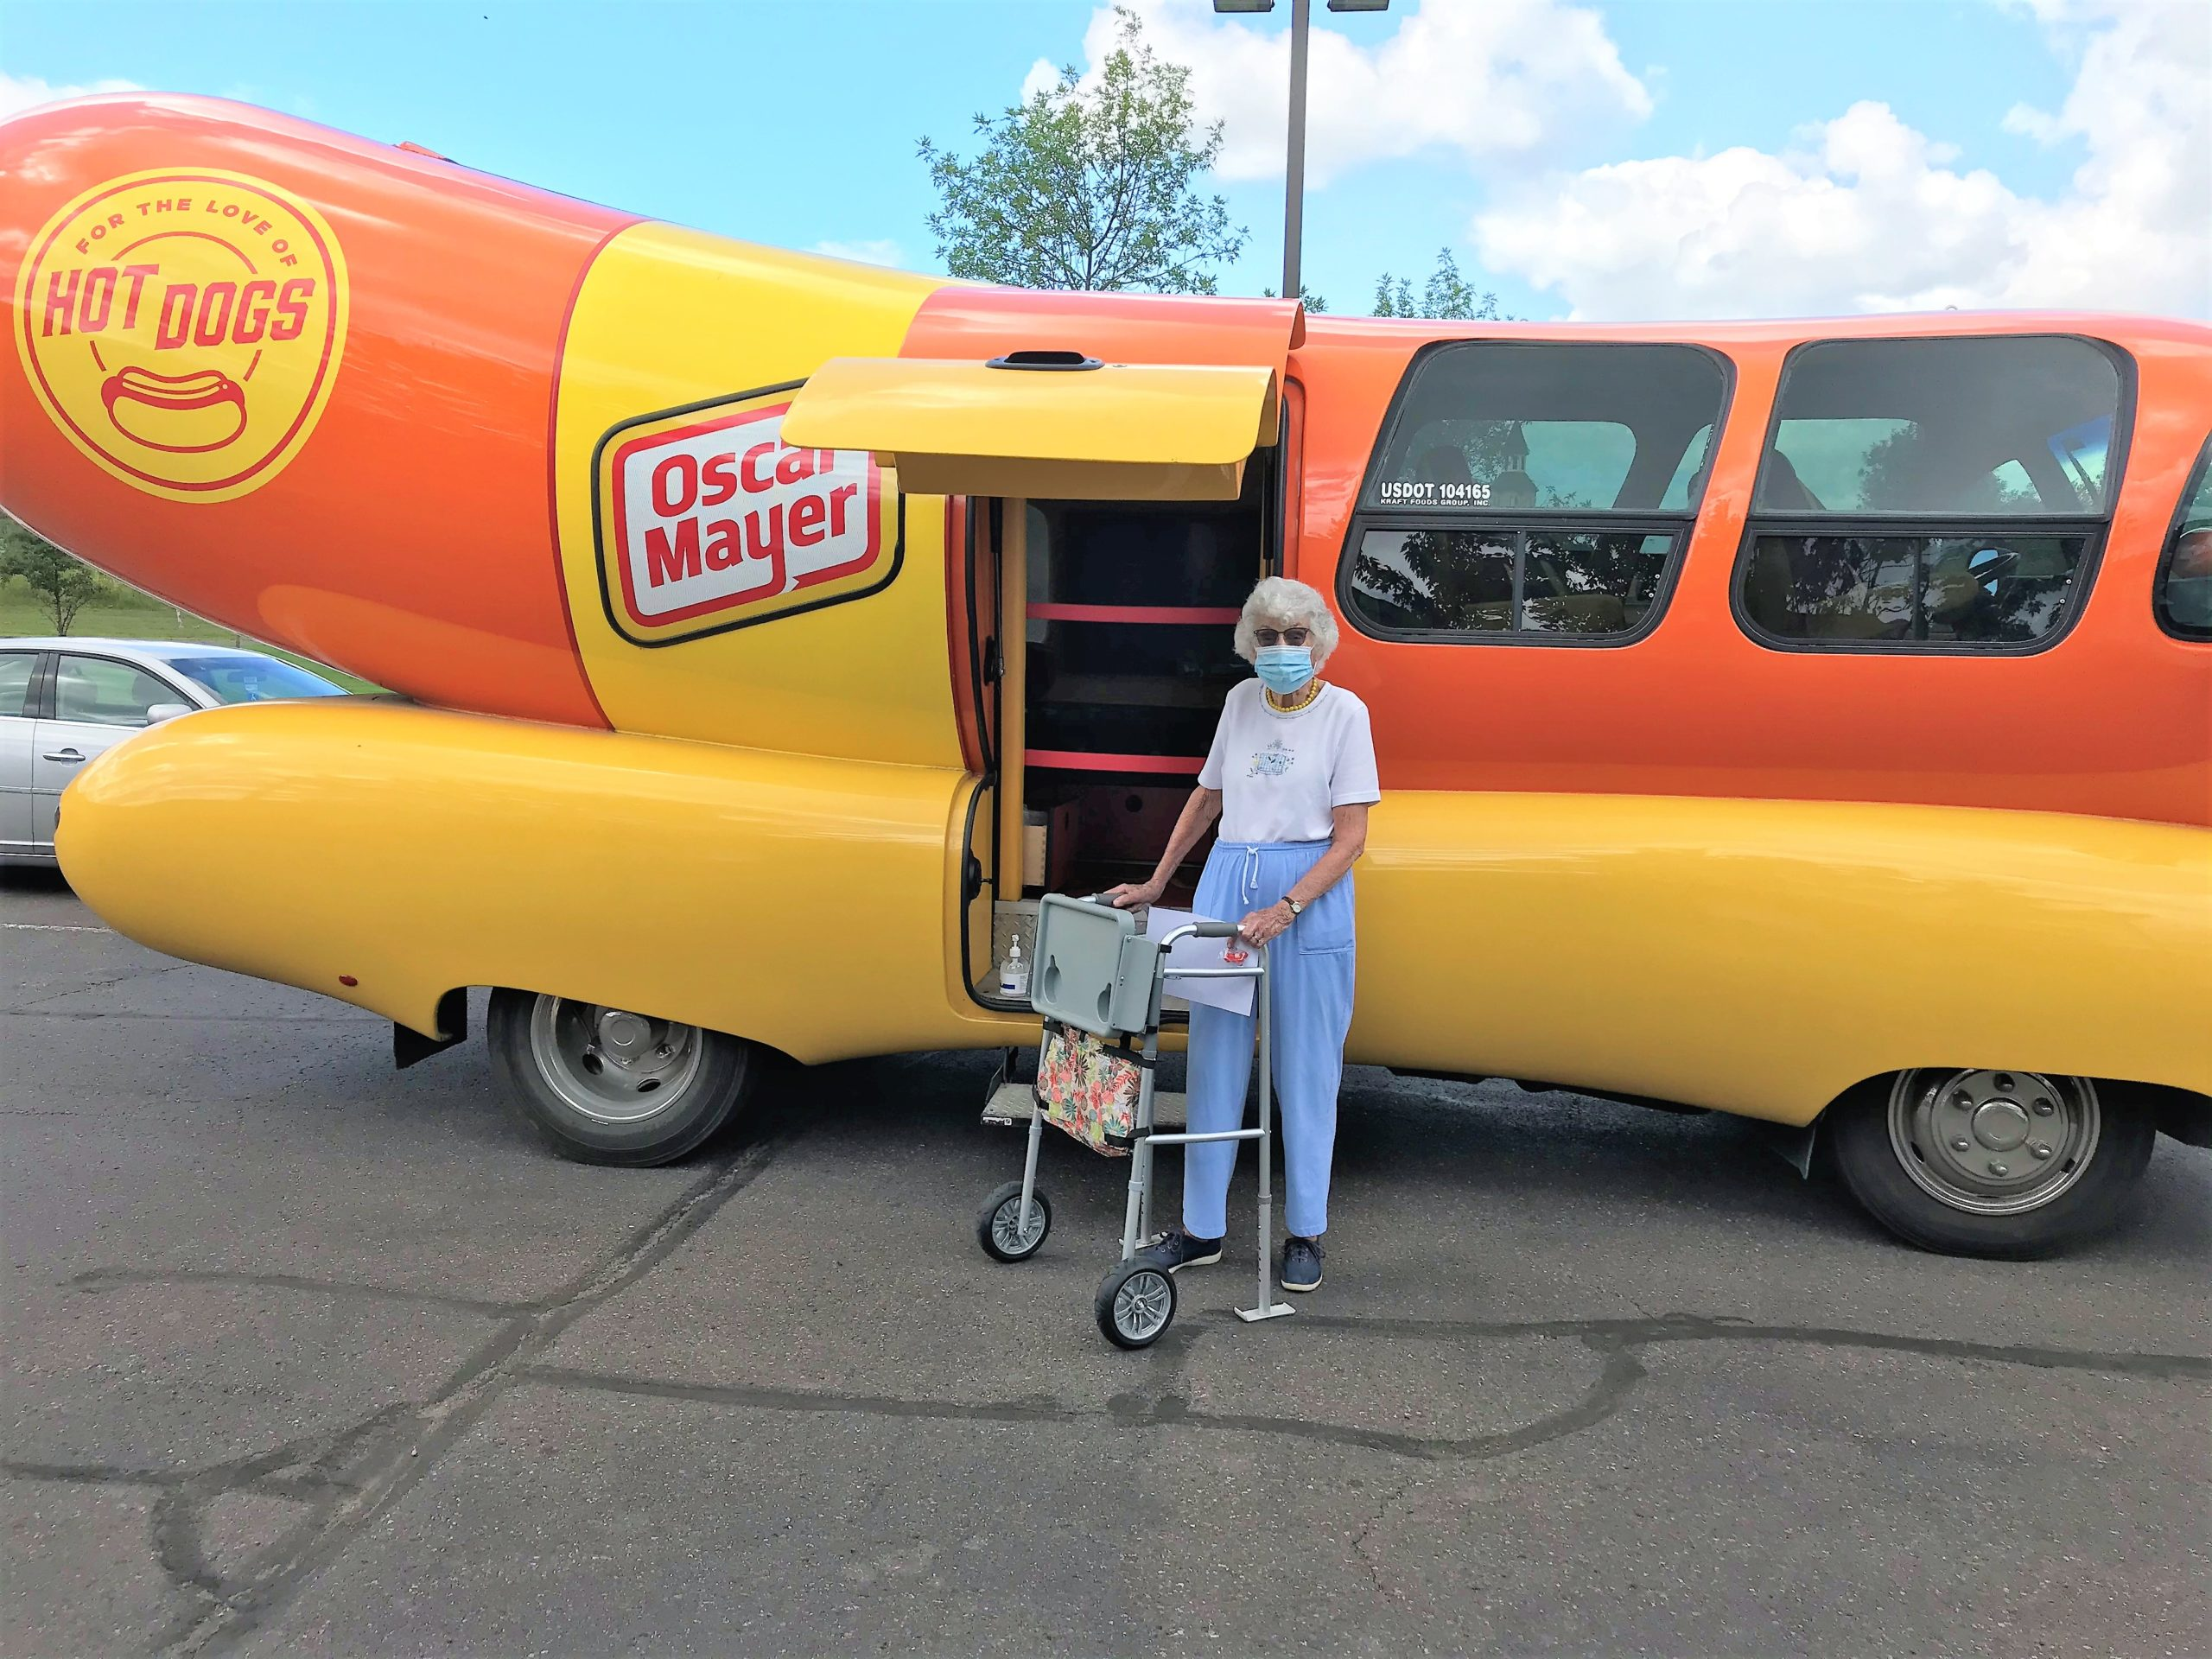 Petey checking out the Wiener Mobile